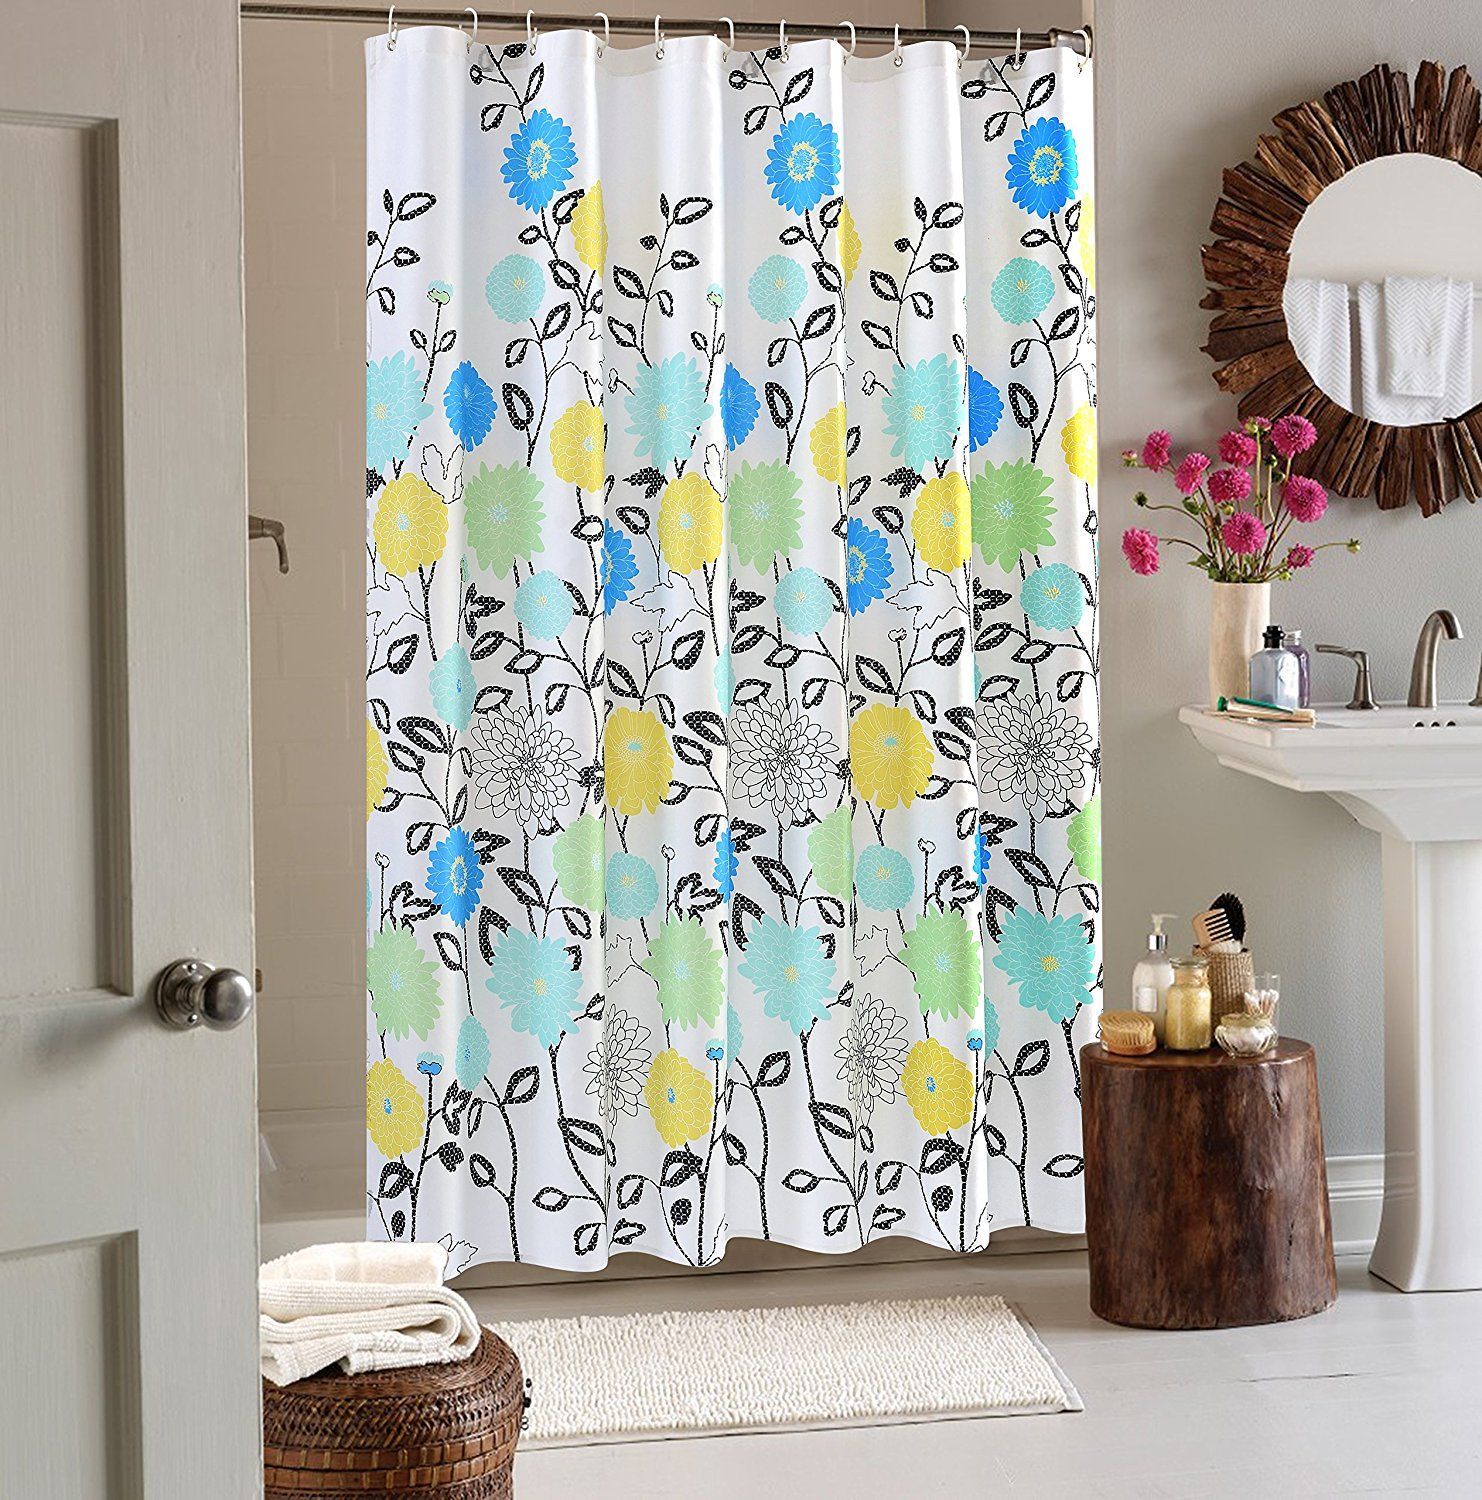 Wimaha Floral Fabric Mildew Resistant Standard Shower Curtain